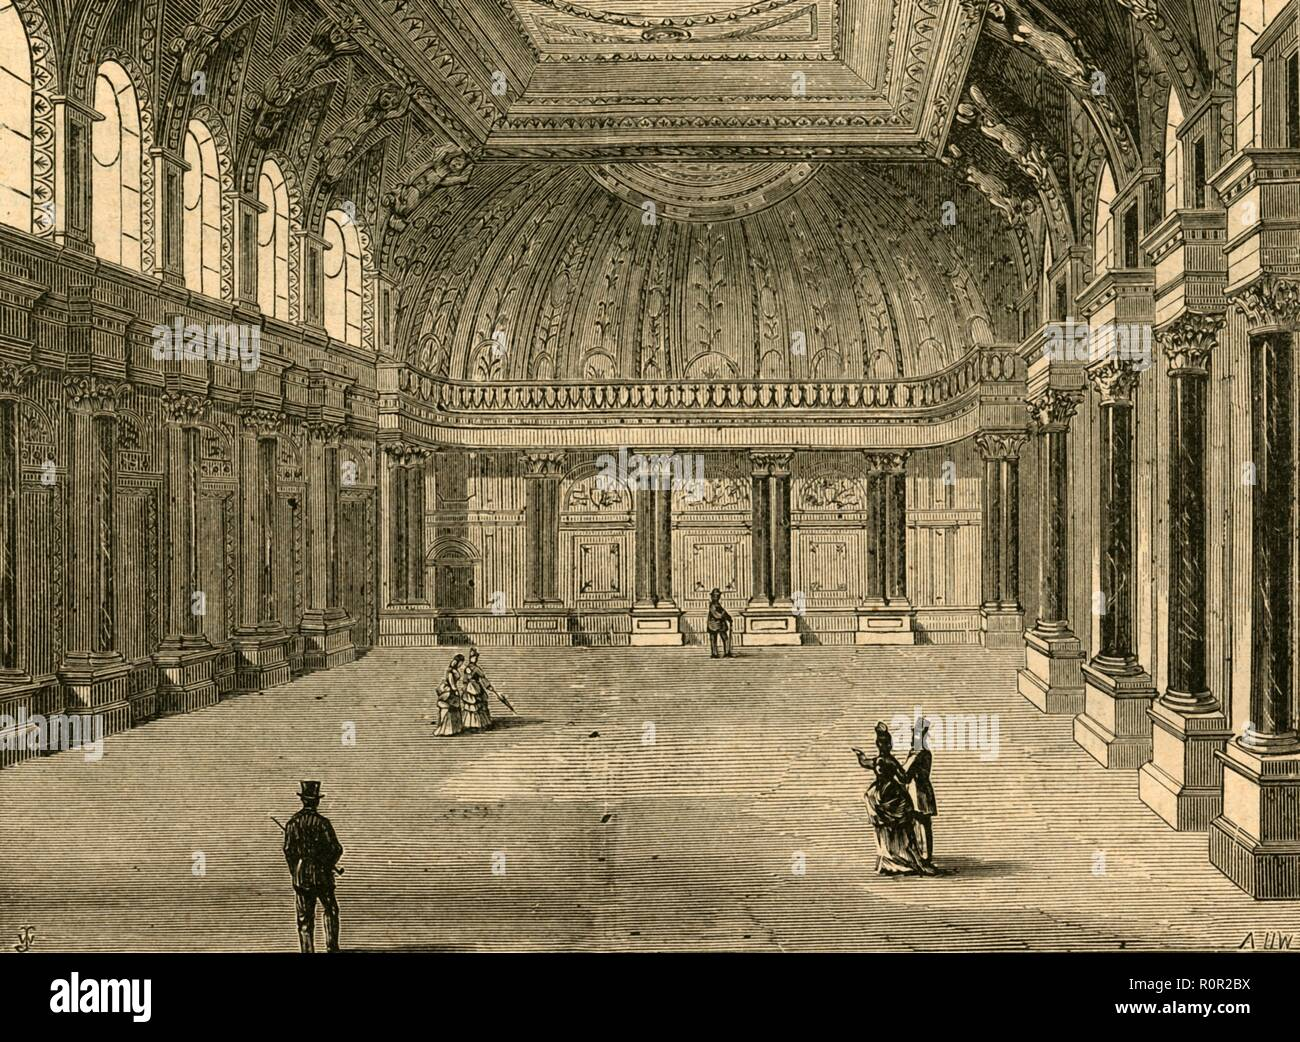 'Interior of Drapers' Hall', 1897. Headquarters of the Worshipful Company of Drapers, one of the livery companies of the City of London. The Hall was rebuilt twice, the first time after it was destroyed by the Great Fire in 1666, and again in 1772 after another fire which did considerable damage. In the 1860s, the frontage was changed and the interior altered by Herbert Williams. From Old and New London, Volume I, by Walter Thornbury. [Cassell and Company, Limited, London, Paris & Melbourne, 1897] - Stock Image